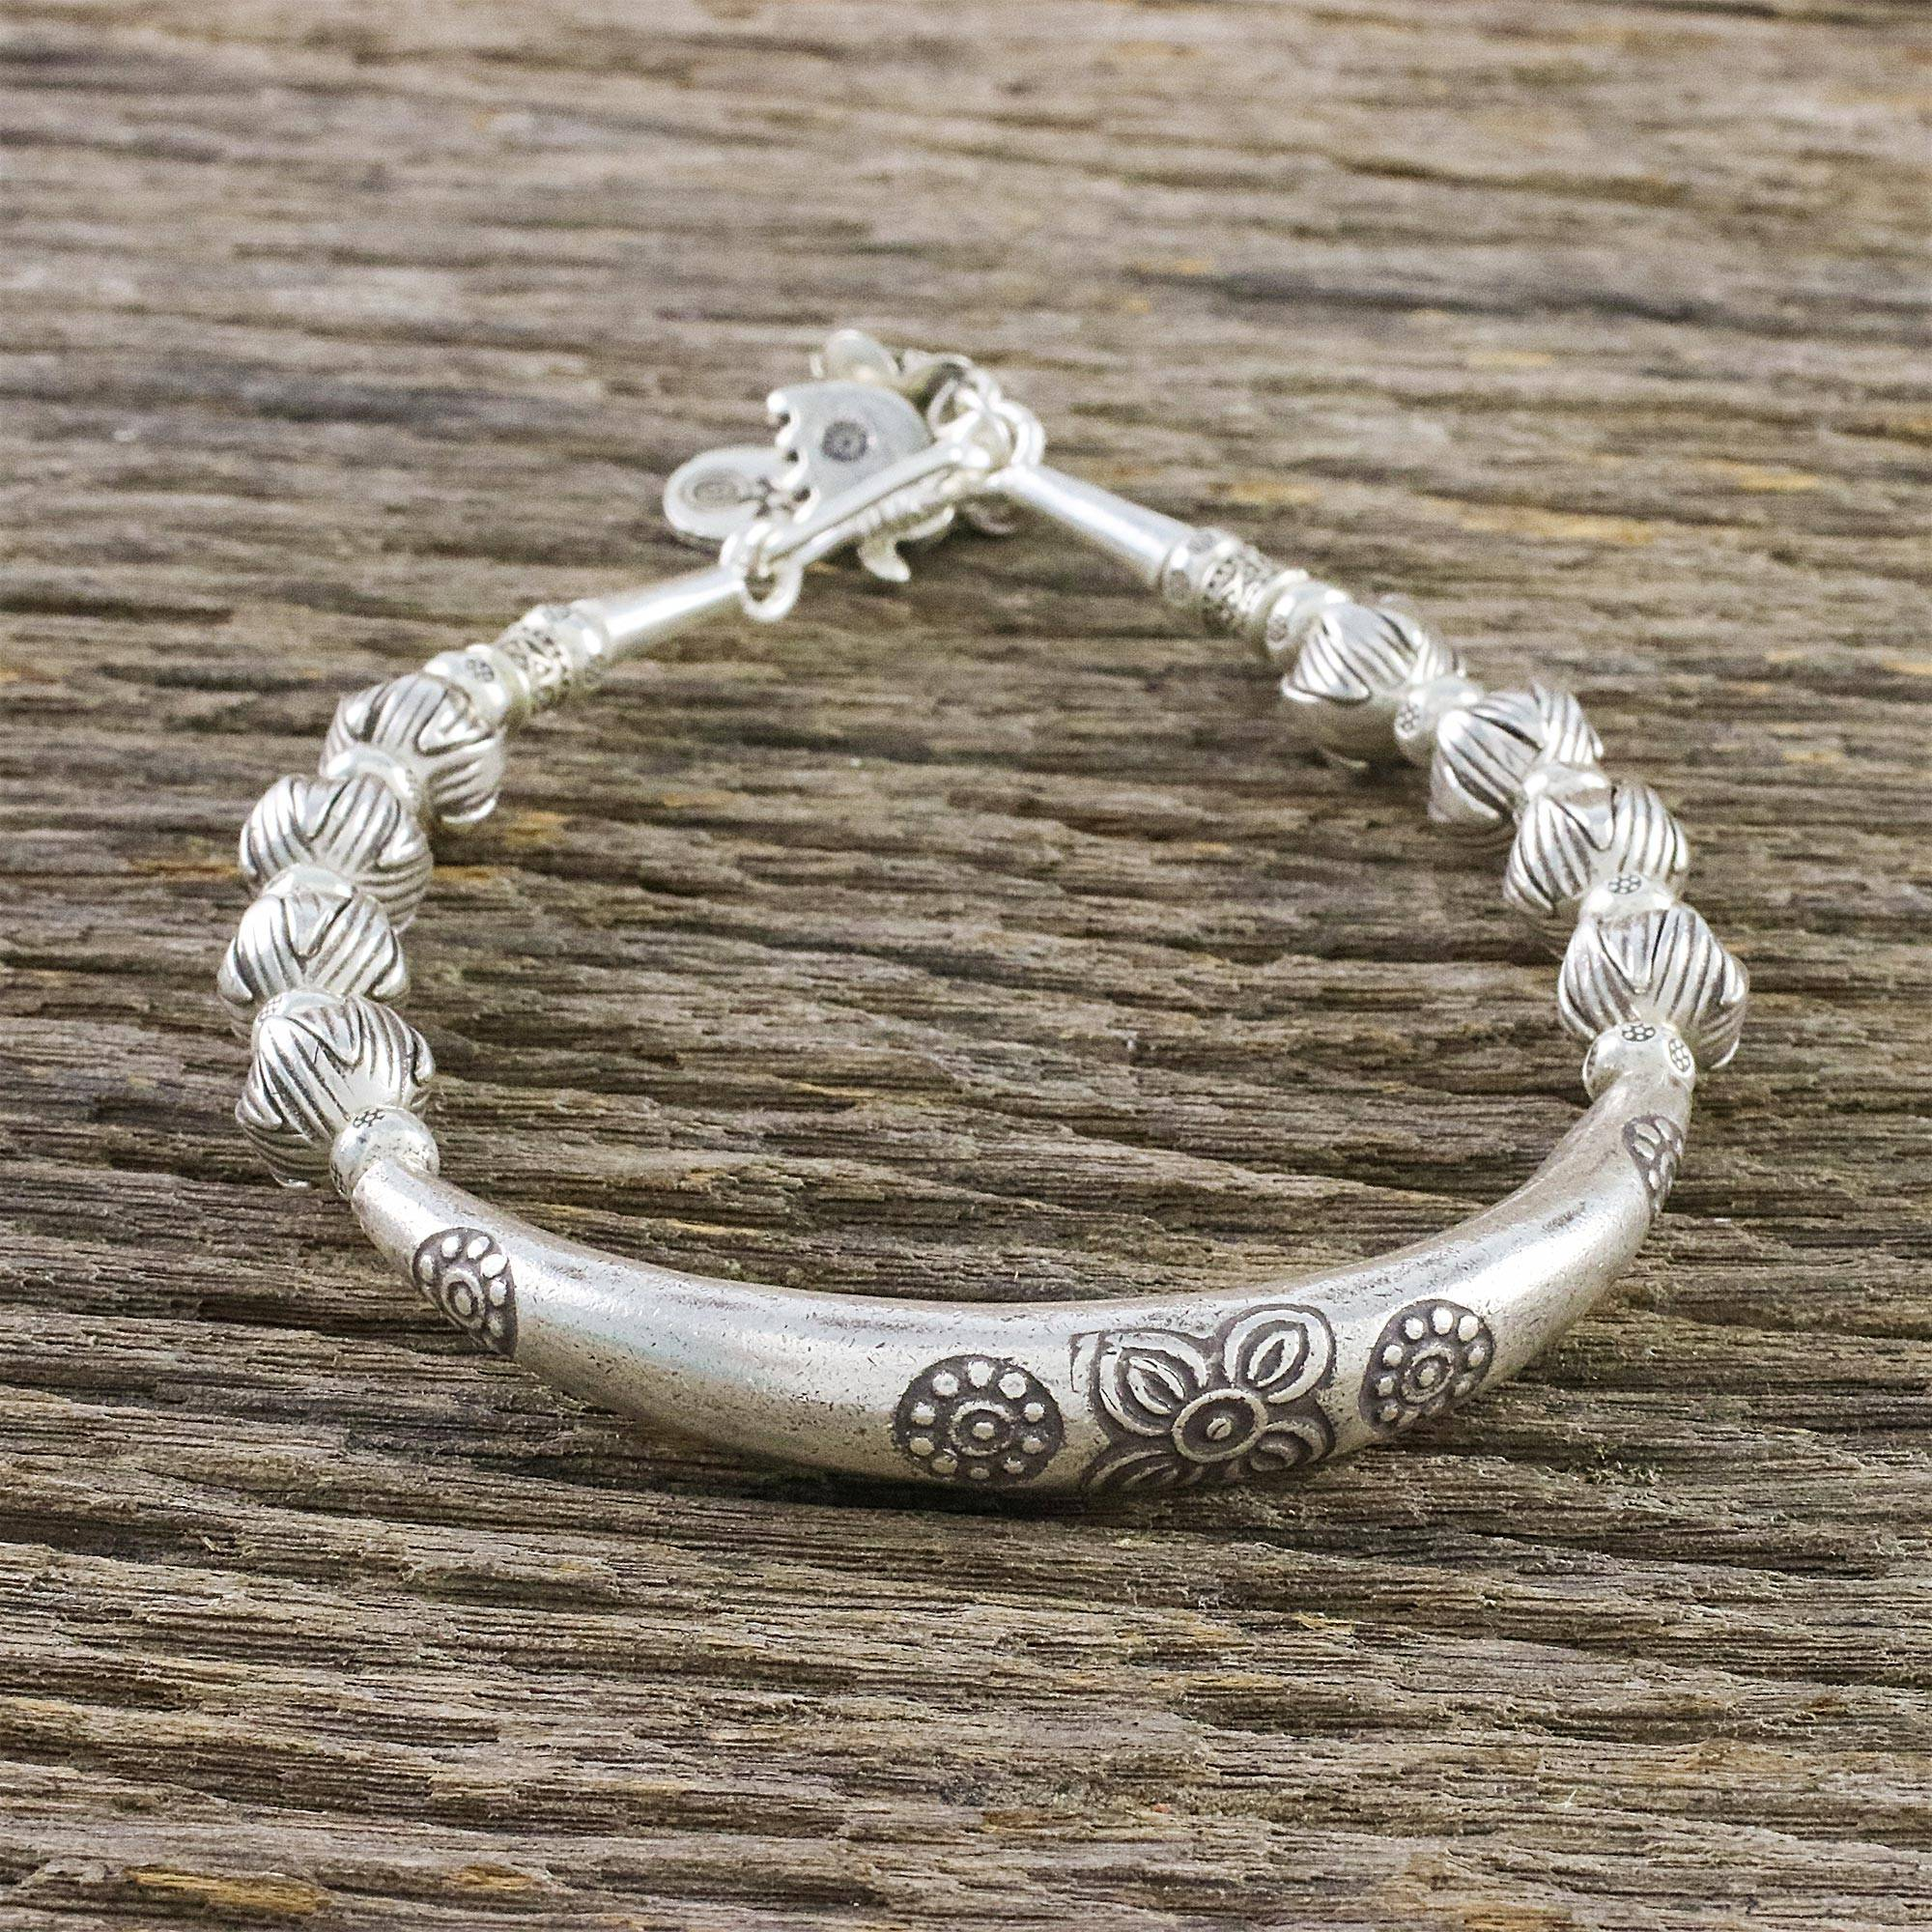 c7ba2b3c808e3 950 Silver Floral Beaded Bracelet from Thailand, 'Harmony of Nature'